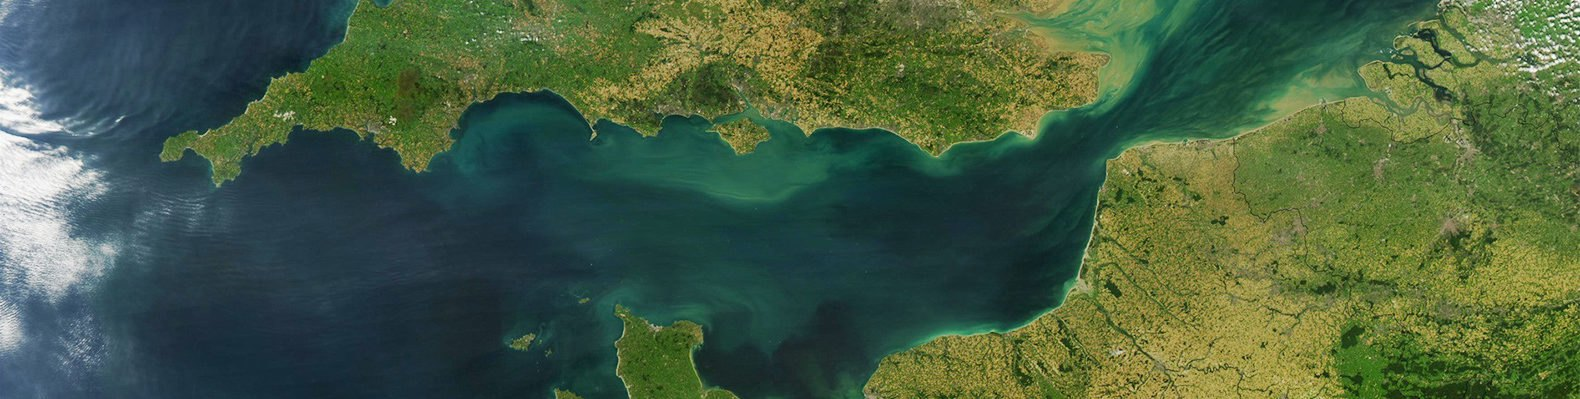 English Channel, Dover Strait, England, France, United Kingdom, satellite image